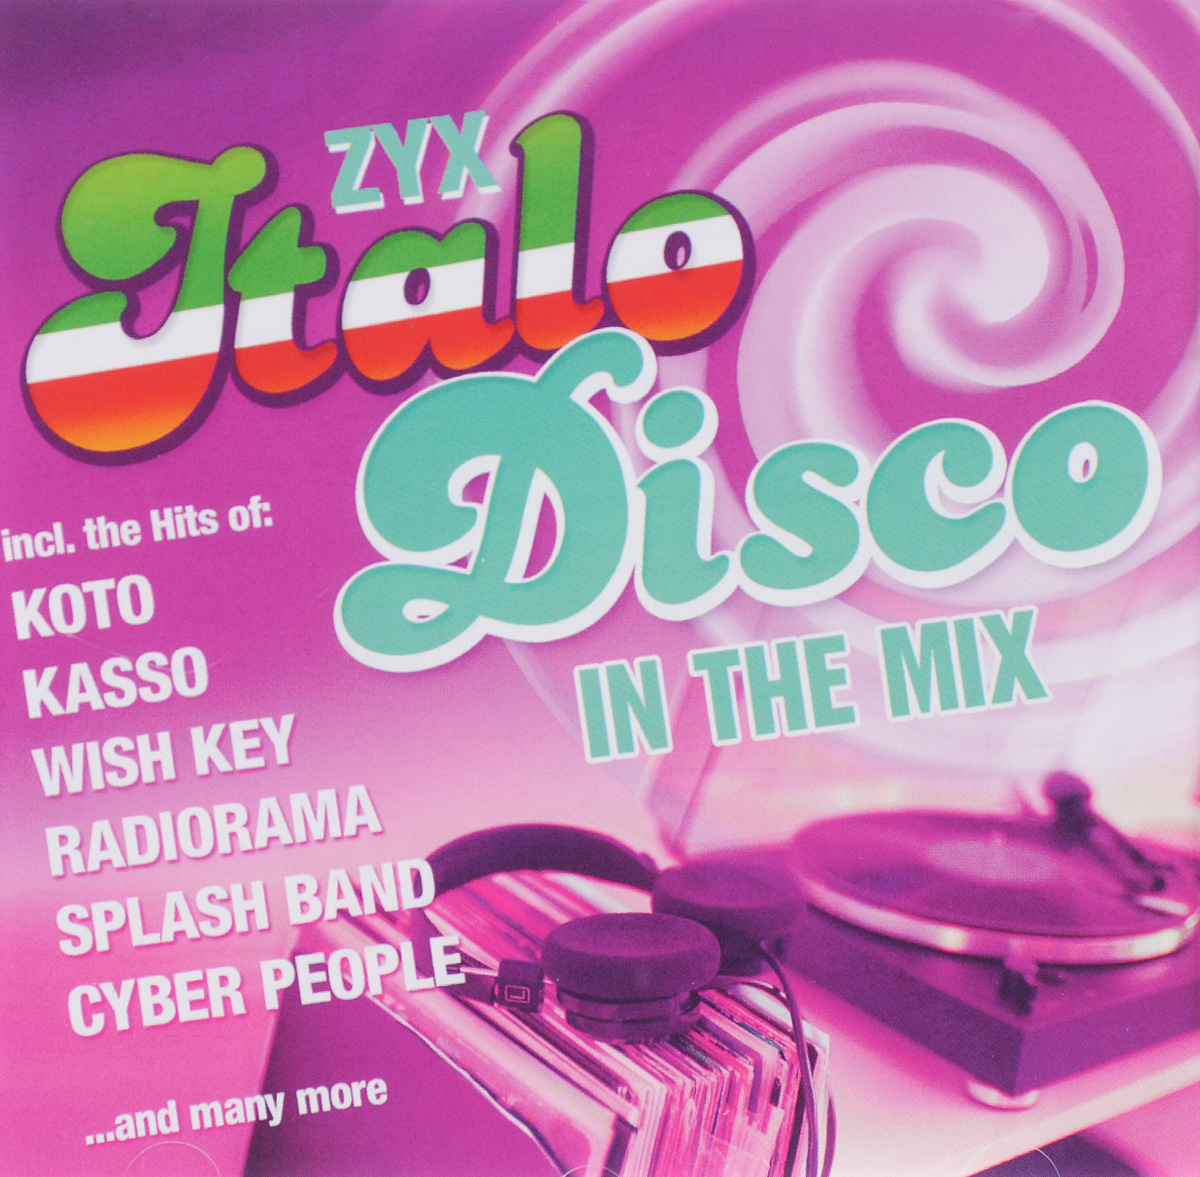 Konty,Quinn Martin,The Splash Band,Common Sense,Radiorama,Claudio Mingardi,Kasso,Cyber People,Vinicio,Koto ZYX Italo Disco In The Mix roxanne джо локвуд cyber people hypnosis tommy candy belle сюзанна милс italo disco collection 16 3 cd page 9